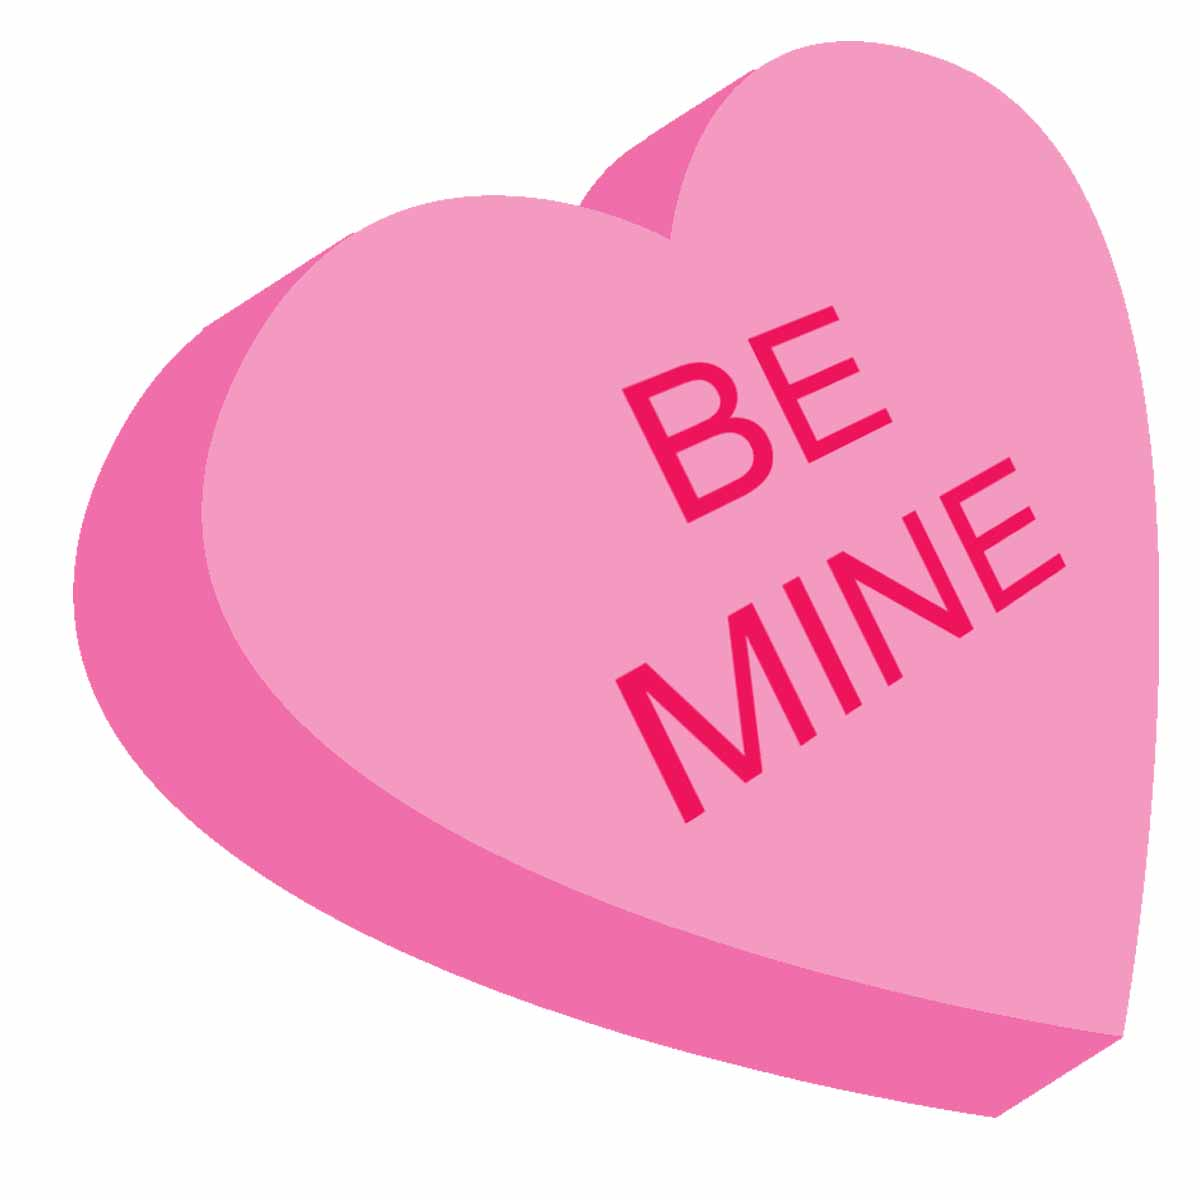 1200x1200 Valentine Clipart Heart The Cliparts